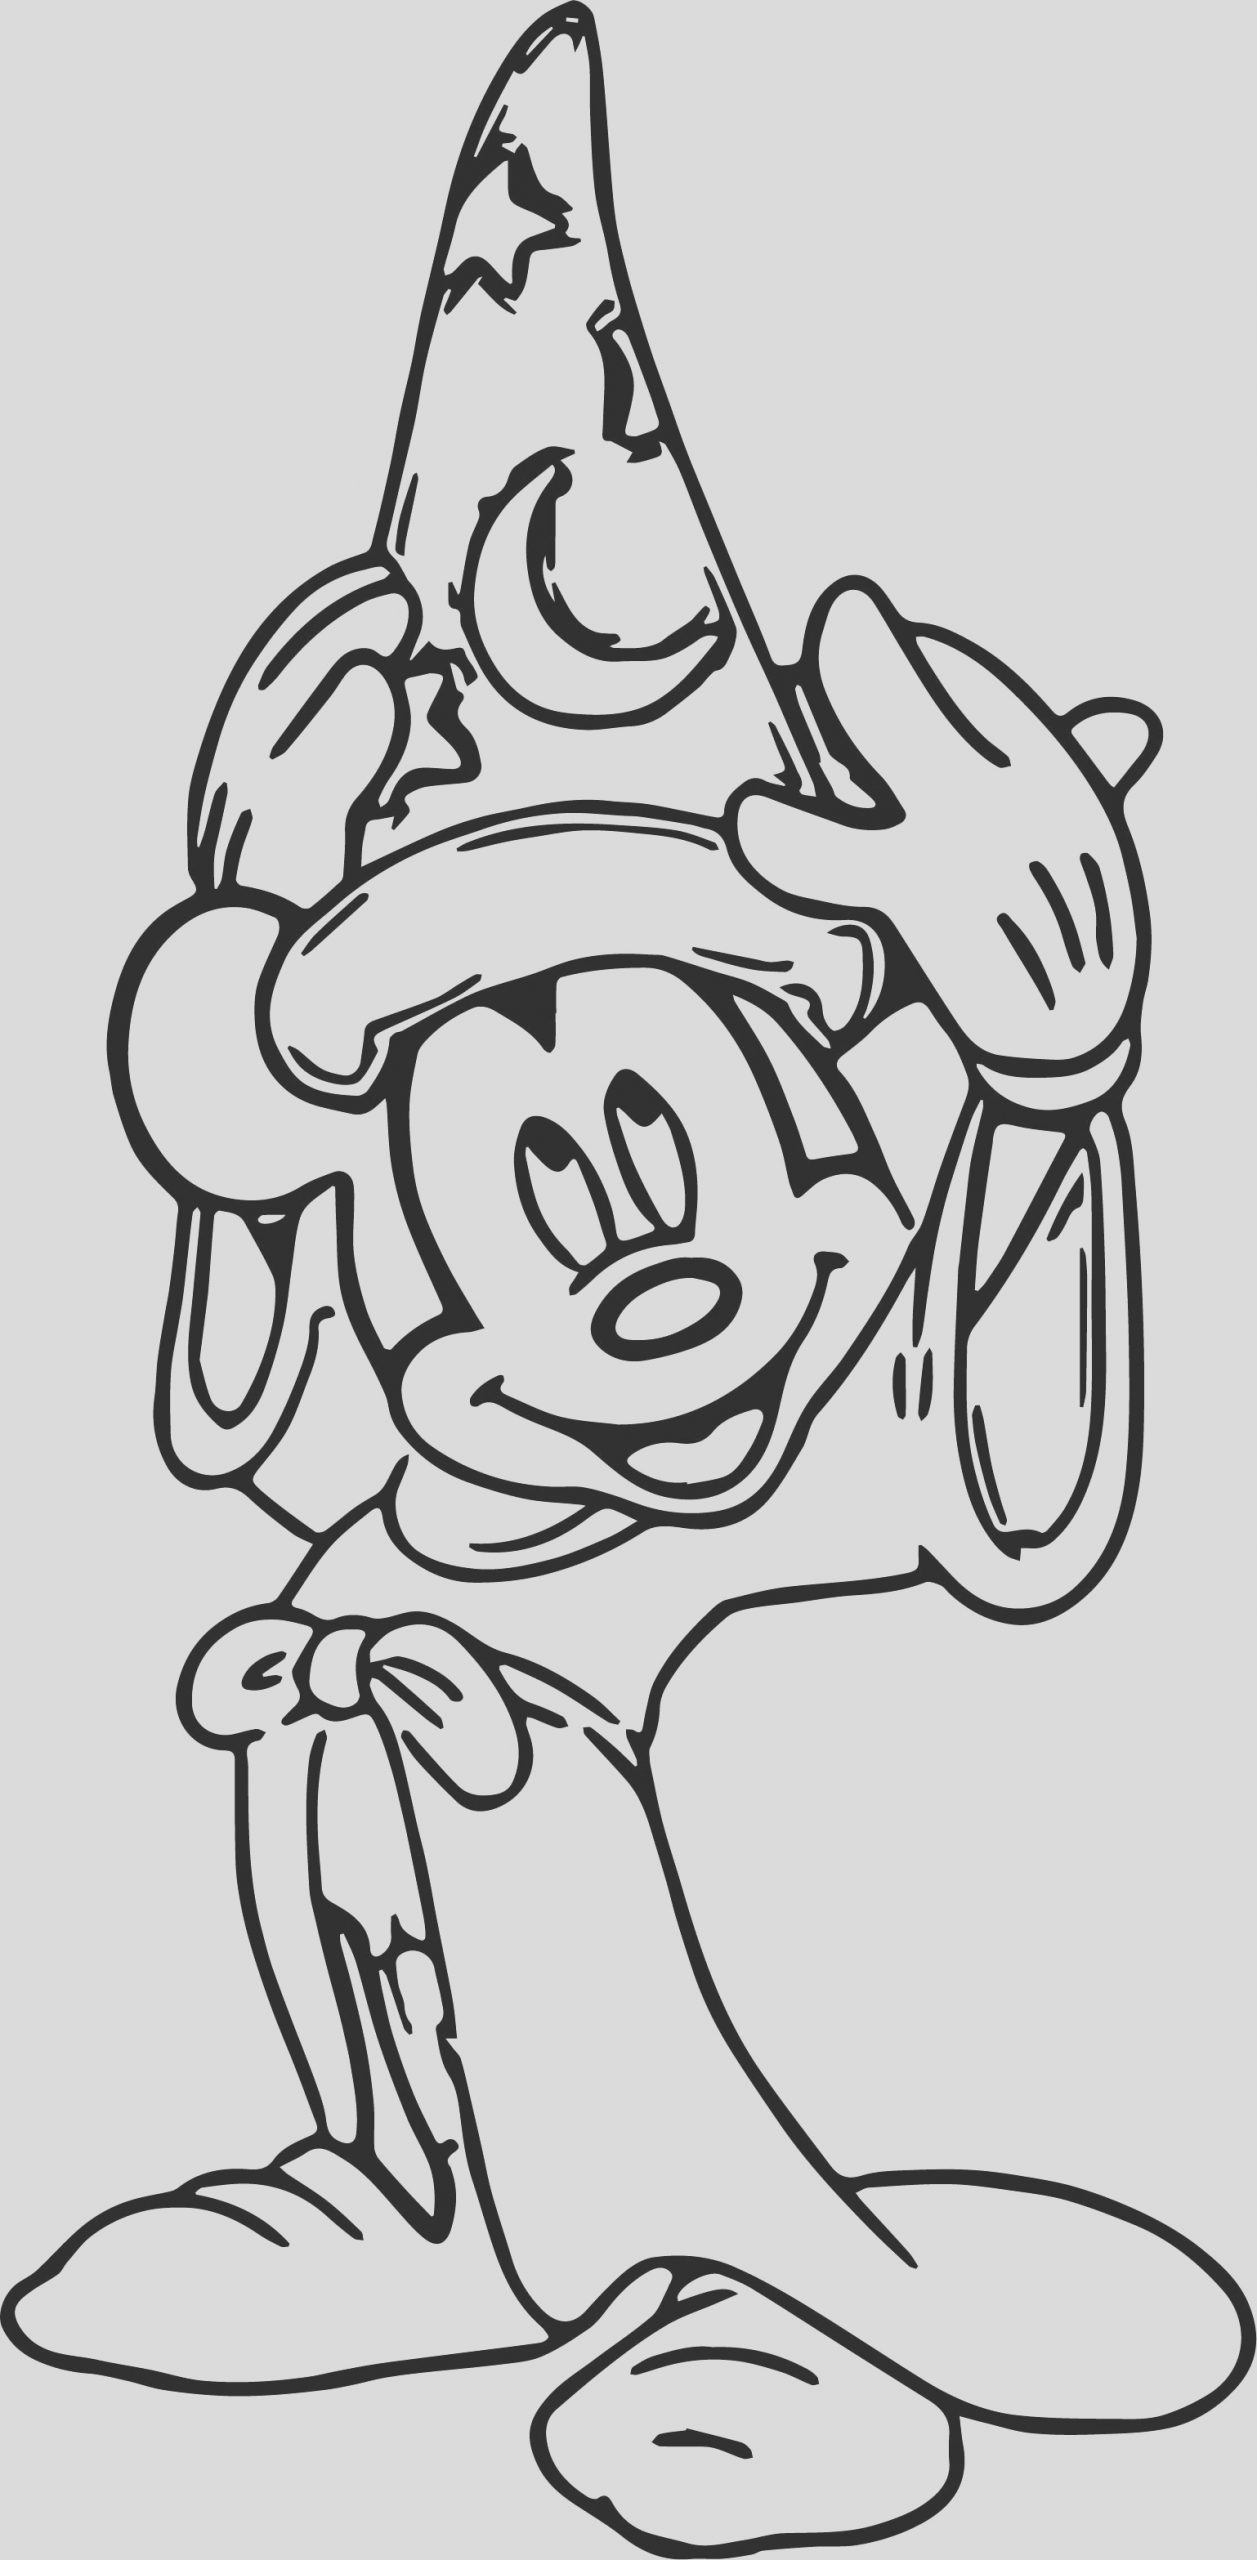 magic mickey mouse hat coloring pages